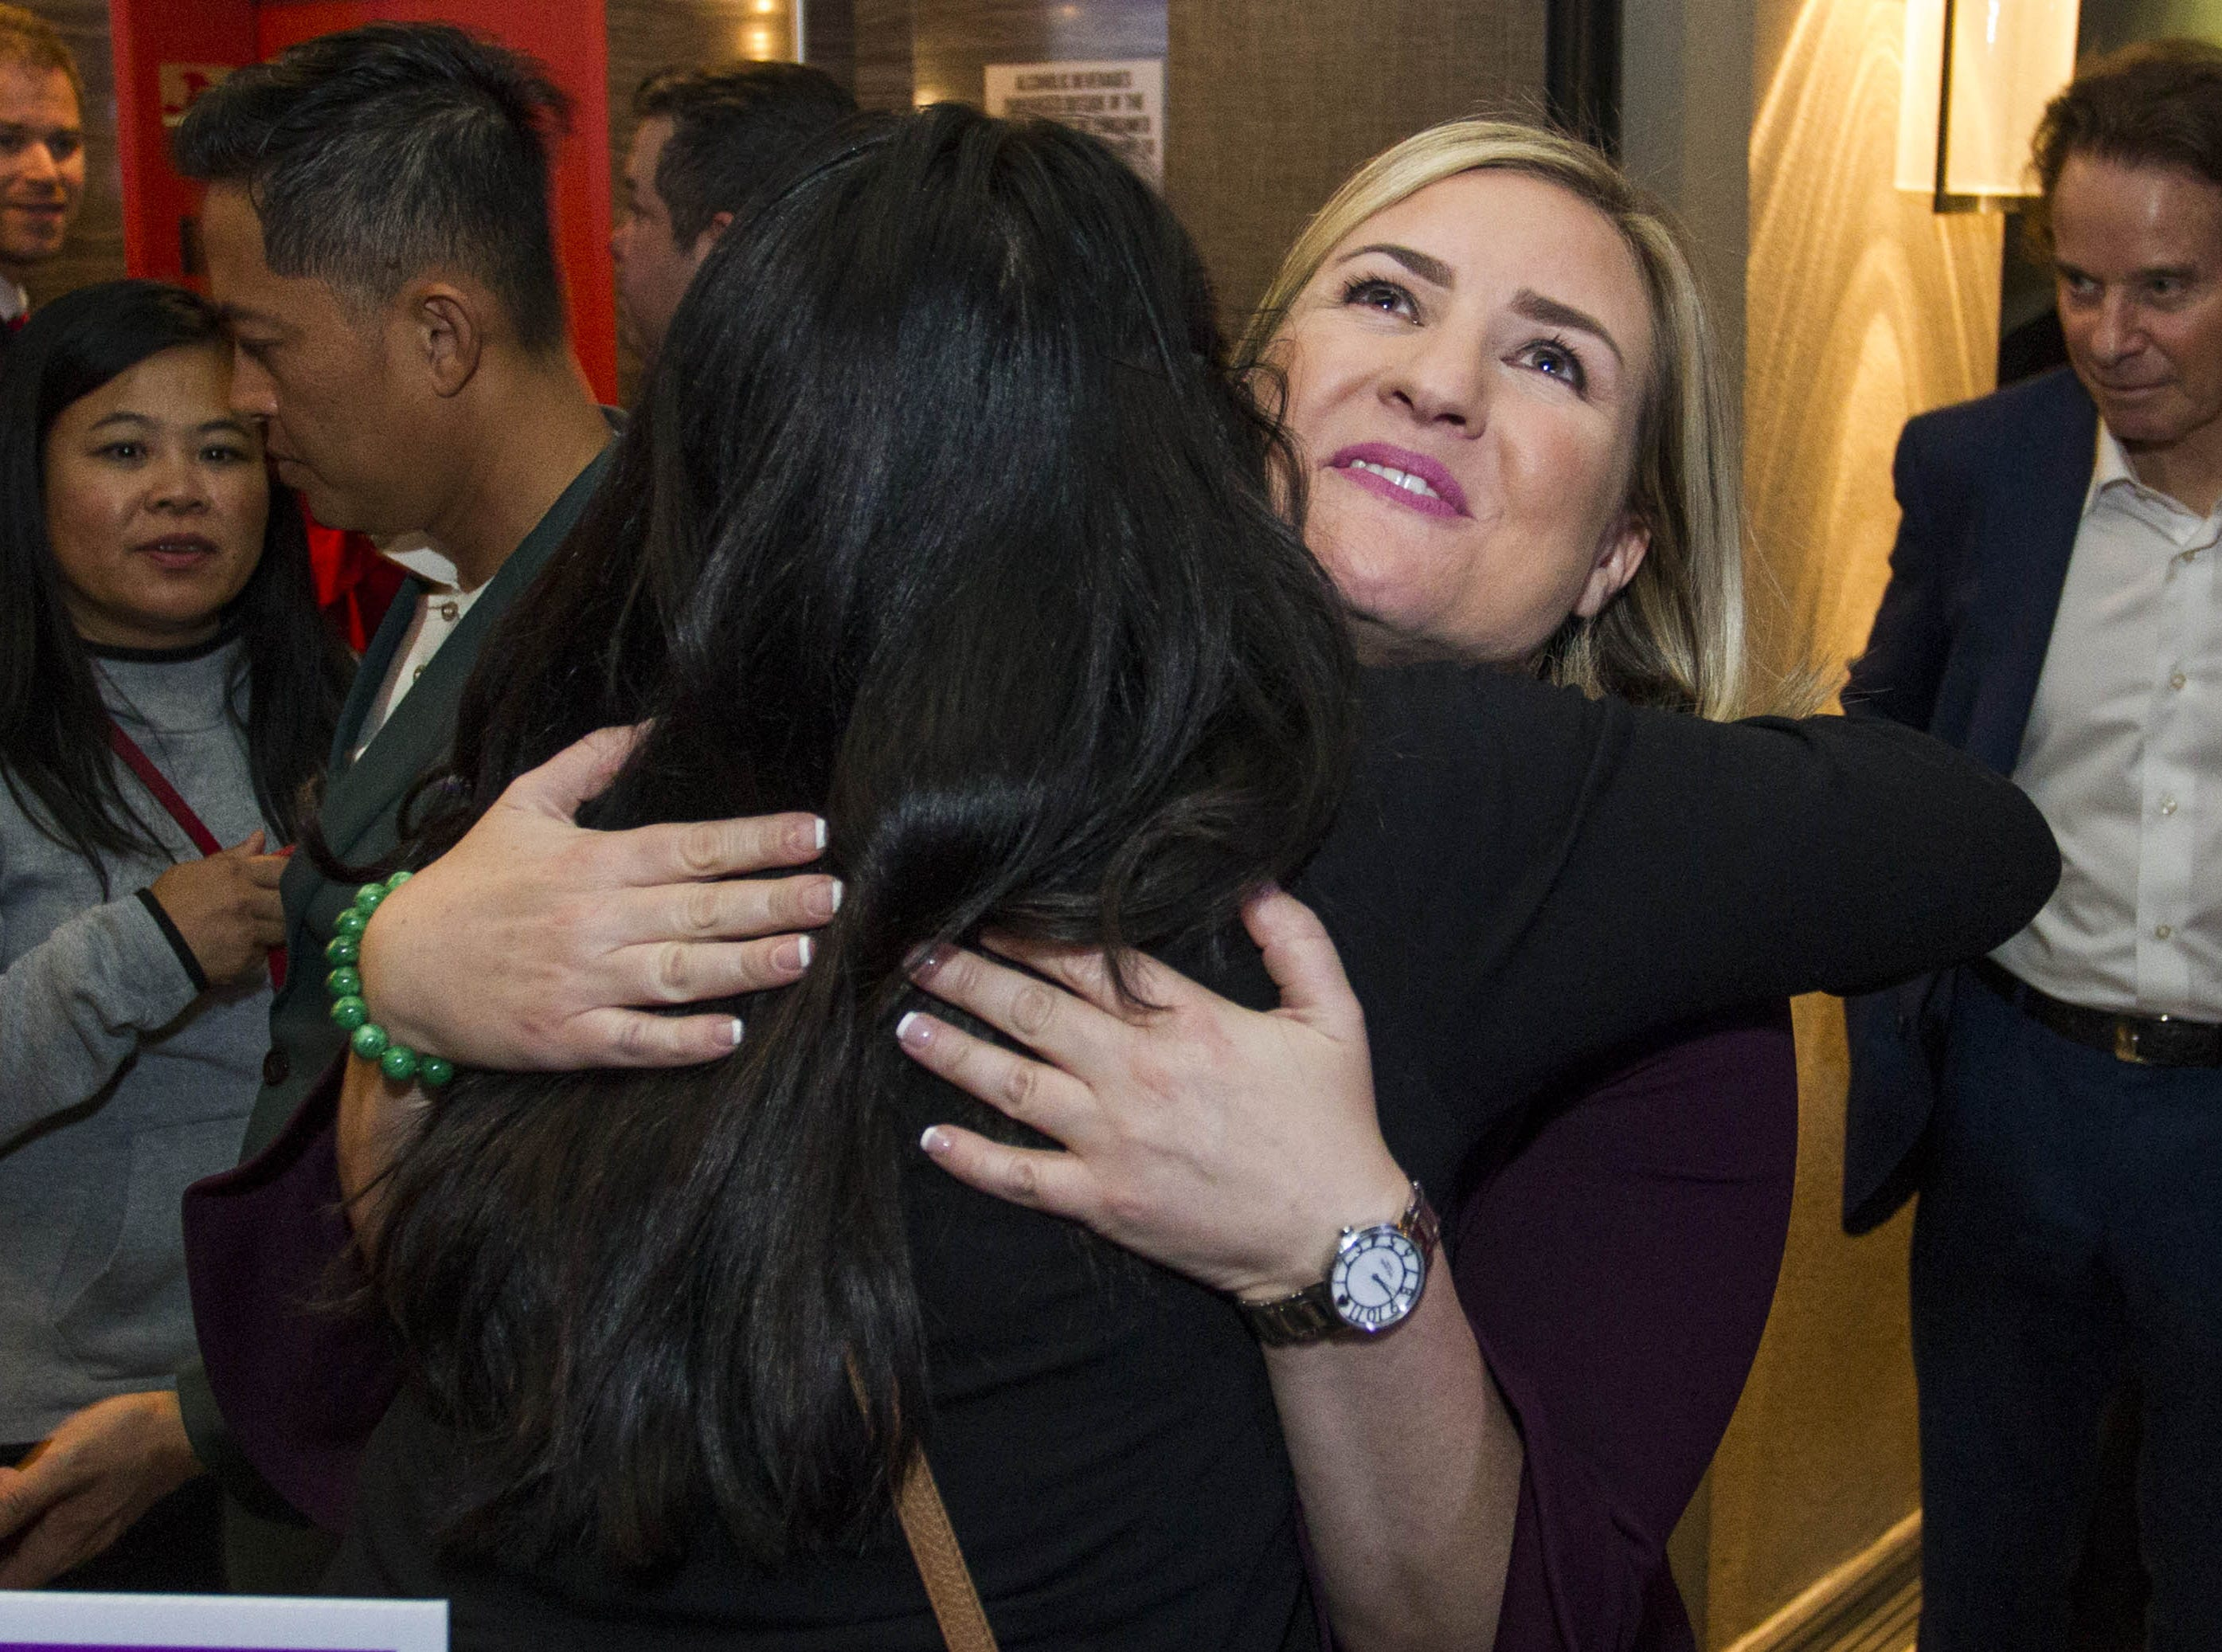 Phoenix mayoral candidate Kate Gallego gets a hug from a friend at the Hilton Garden Inn in Phoenix on Nov. 6, 2018.